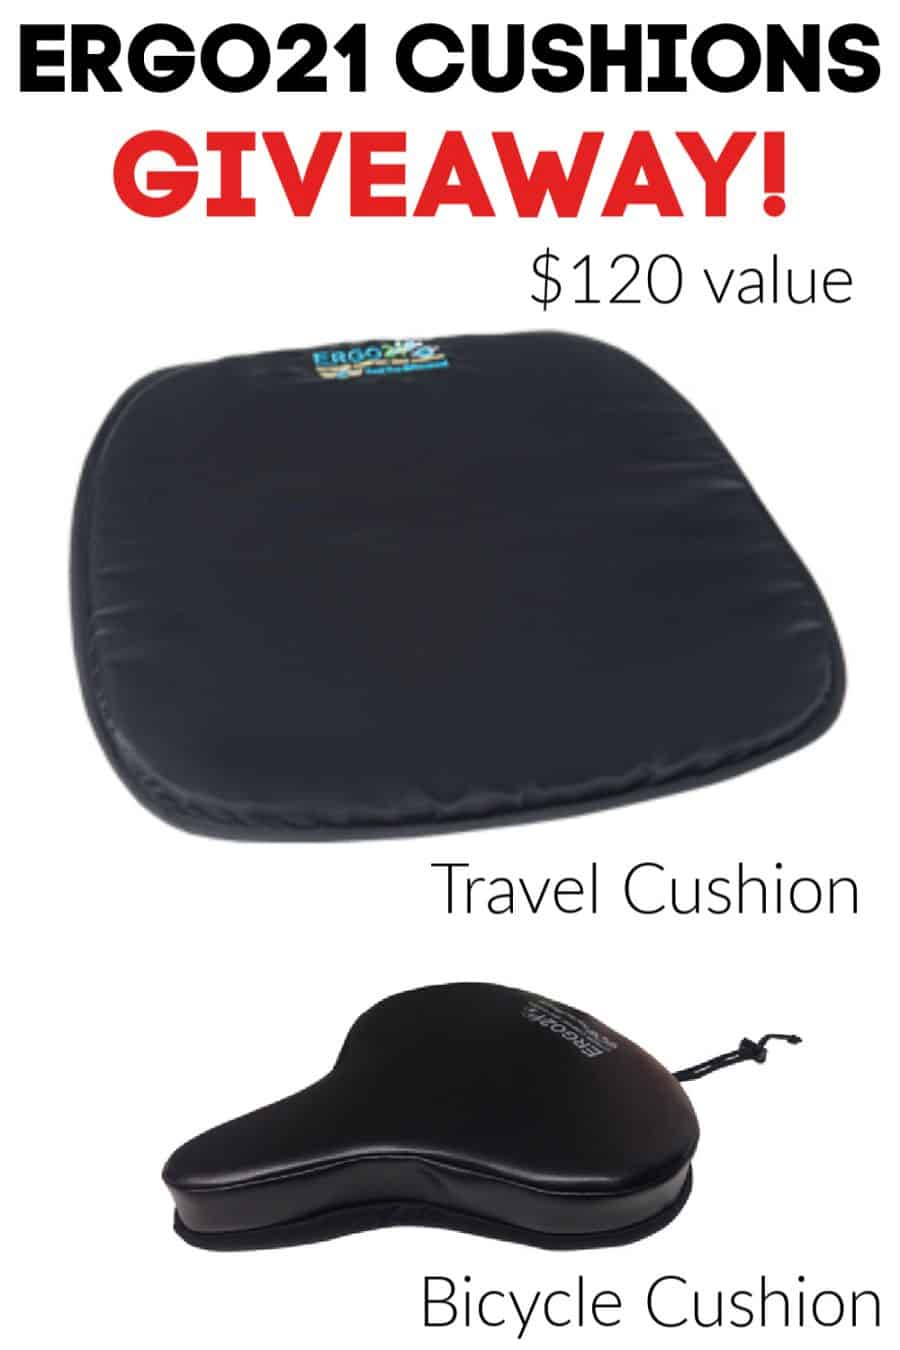 Ergo21 Awesome Comfort Cushions Giveaway